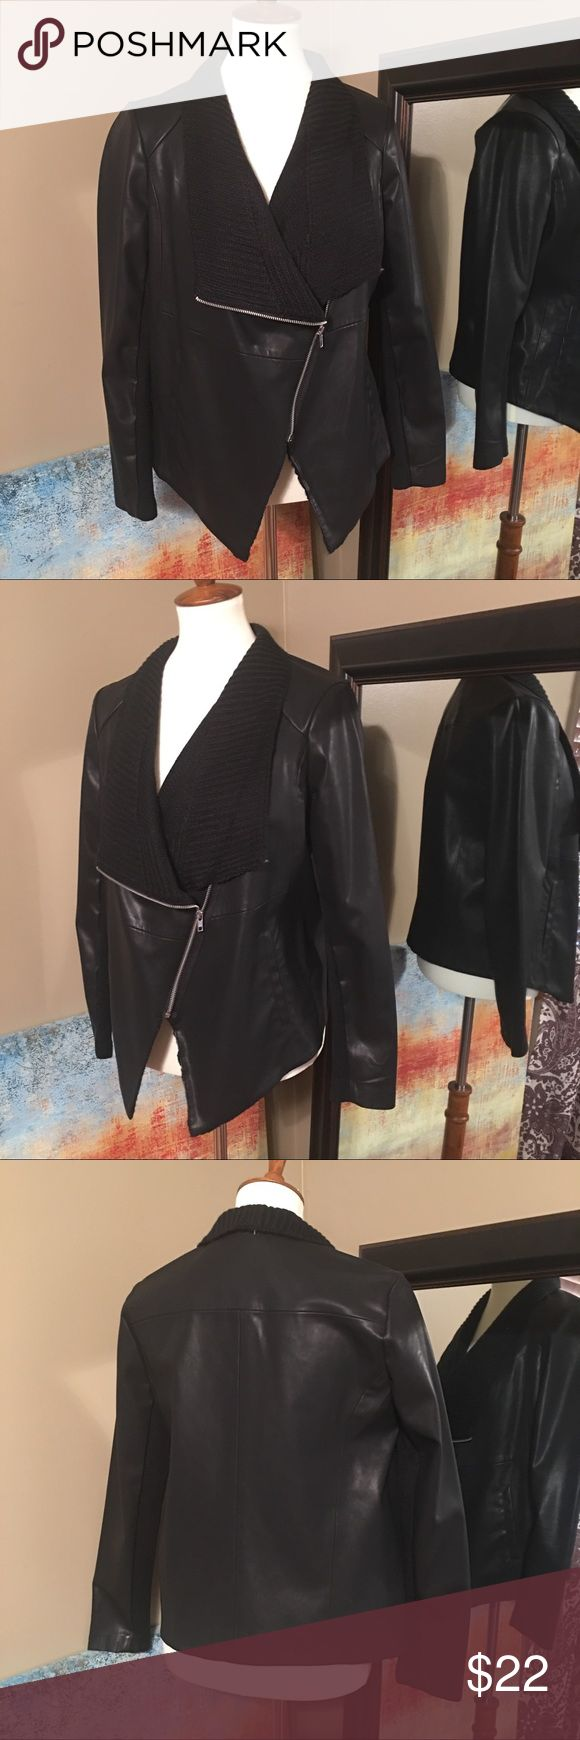 BB Dakota Asymmetrical Faux Leather & Knit Jacket With a graceful draped silhouette and easy open front, this soft faux jacket from BB Dakota is an instant outfit maker. Draped lapels, long sleeves with stretch knit panels. Feel free to make an offer using the offer link. Bundle 2+ listings to save more. 🚫Trades. 📦Same or next day shipping. 📫 BB Dakota Jackets & Coats